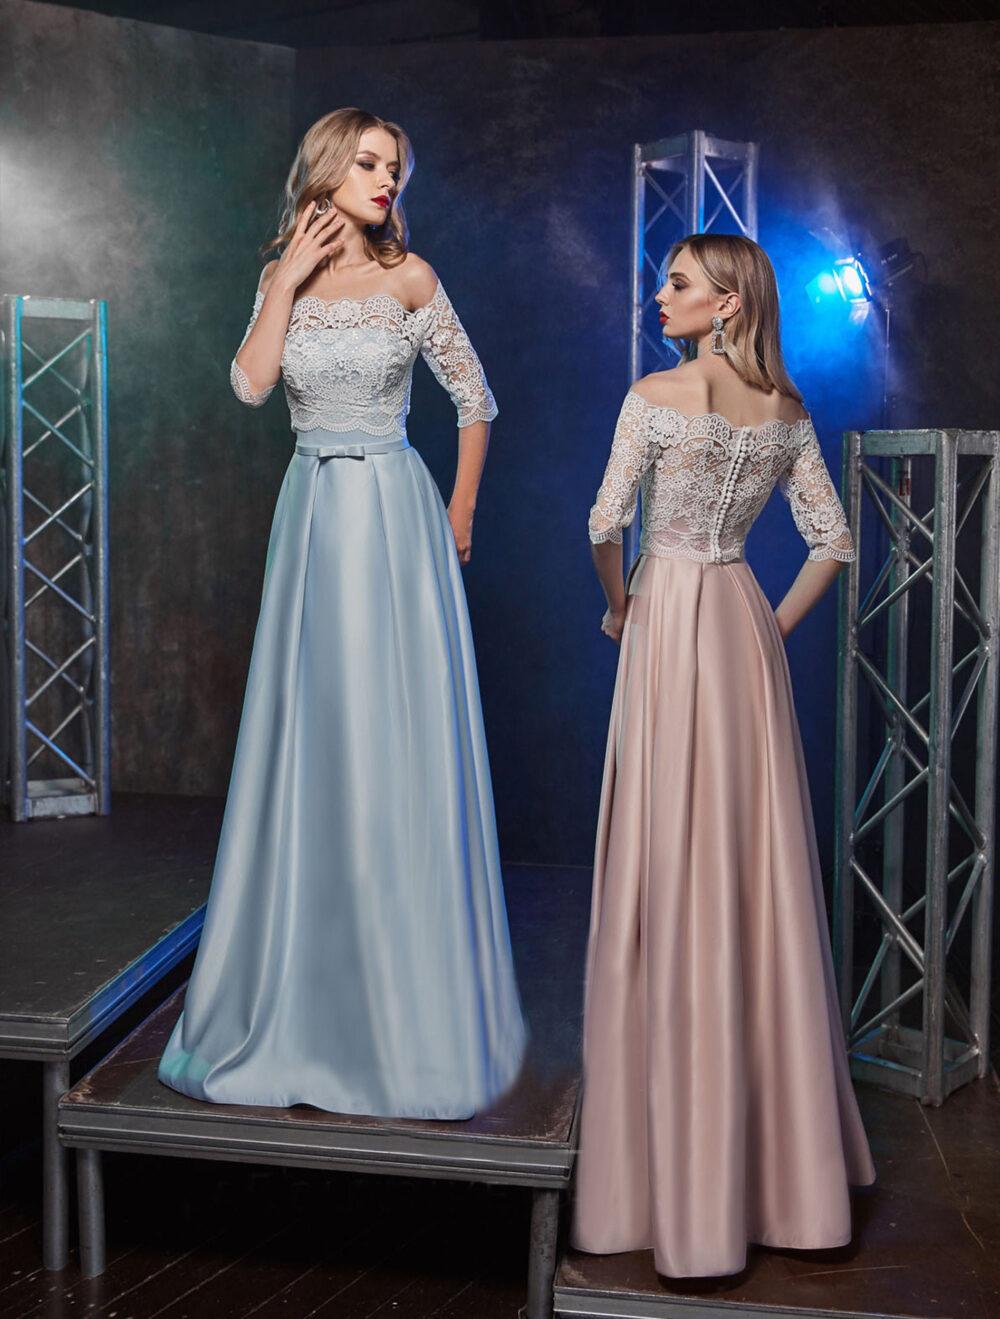 A-Line Women Formal Dress, Bridesmaid Evening Illusion Tulle Prom V-Neck Backless Chiffon Dress